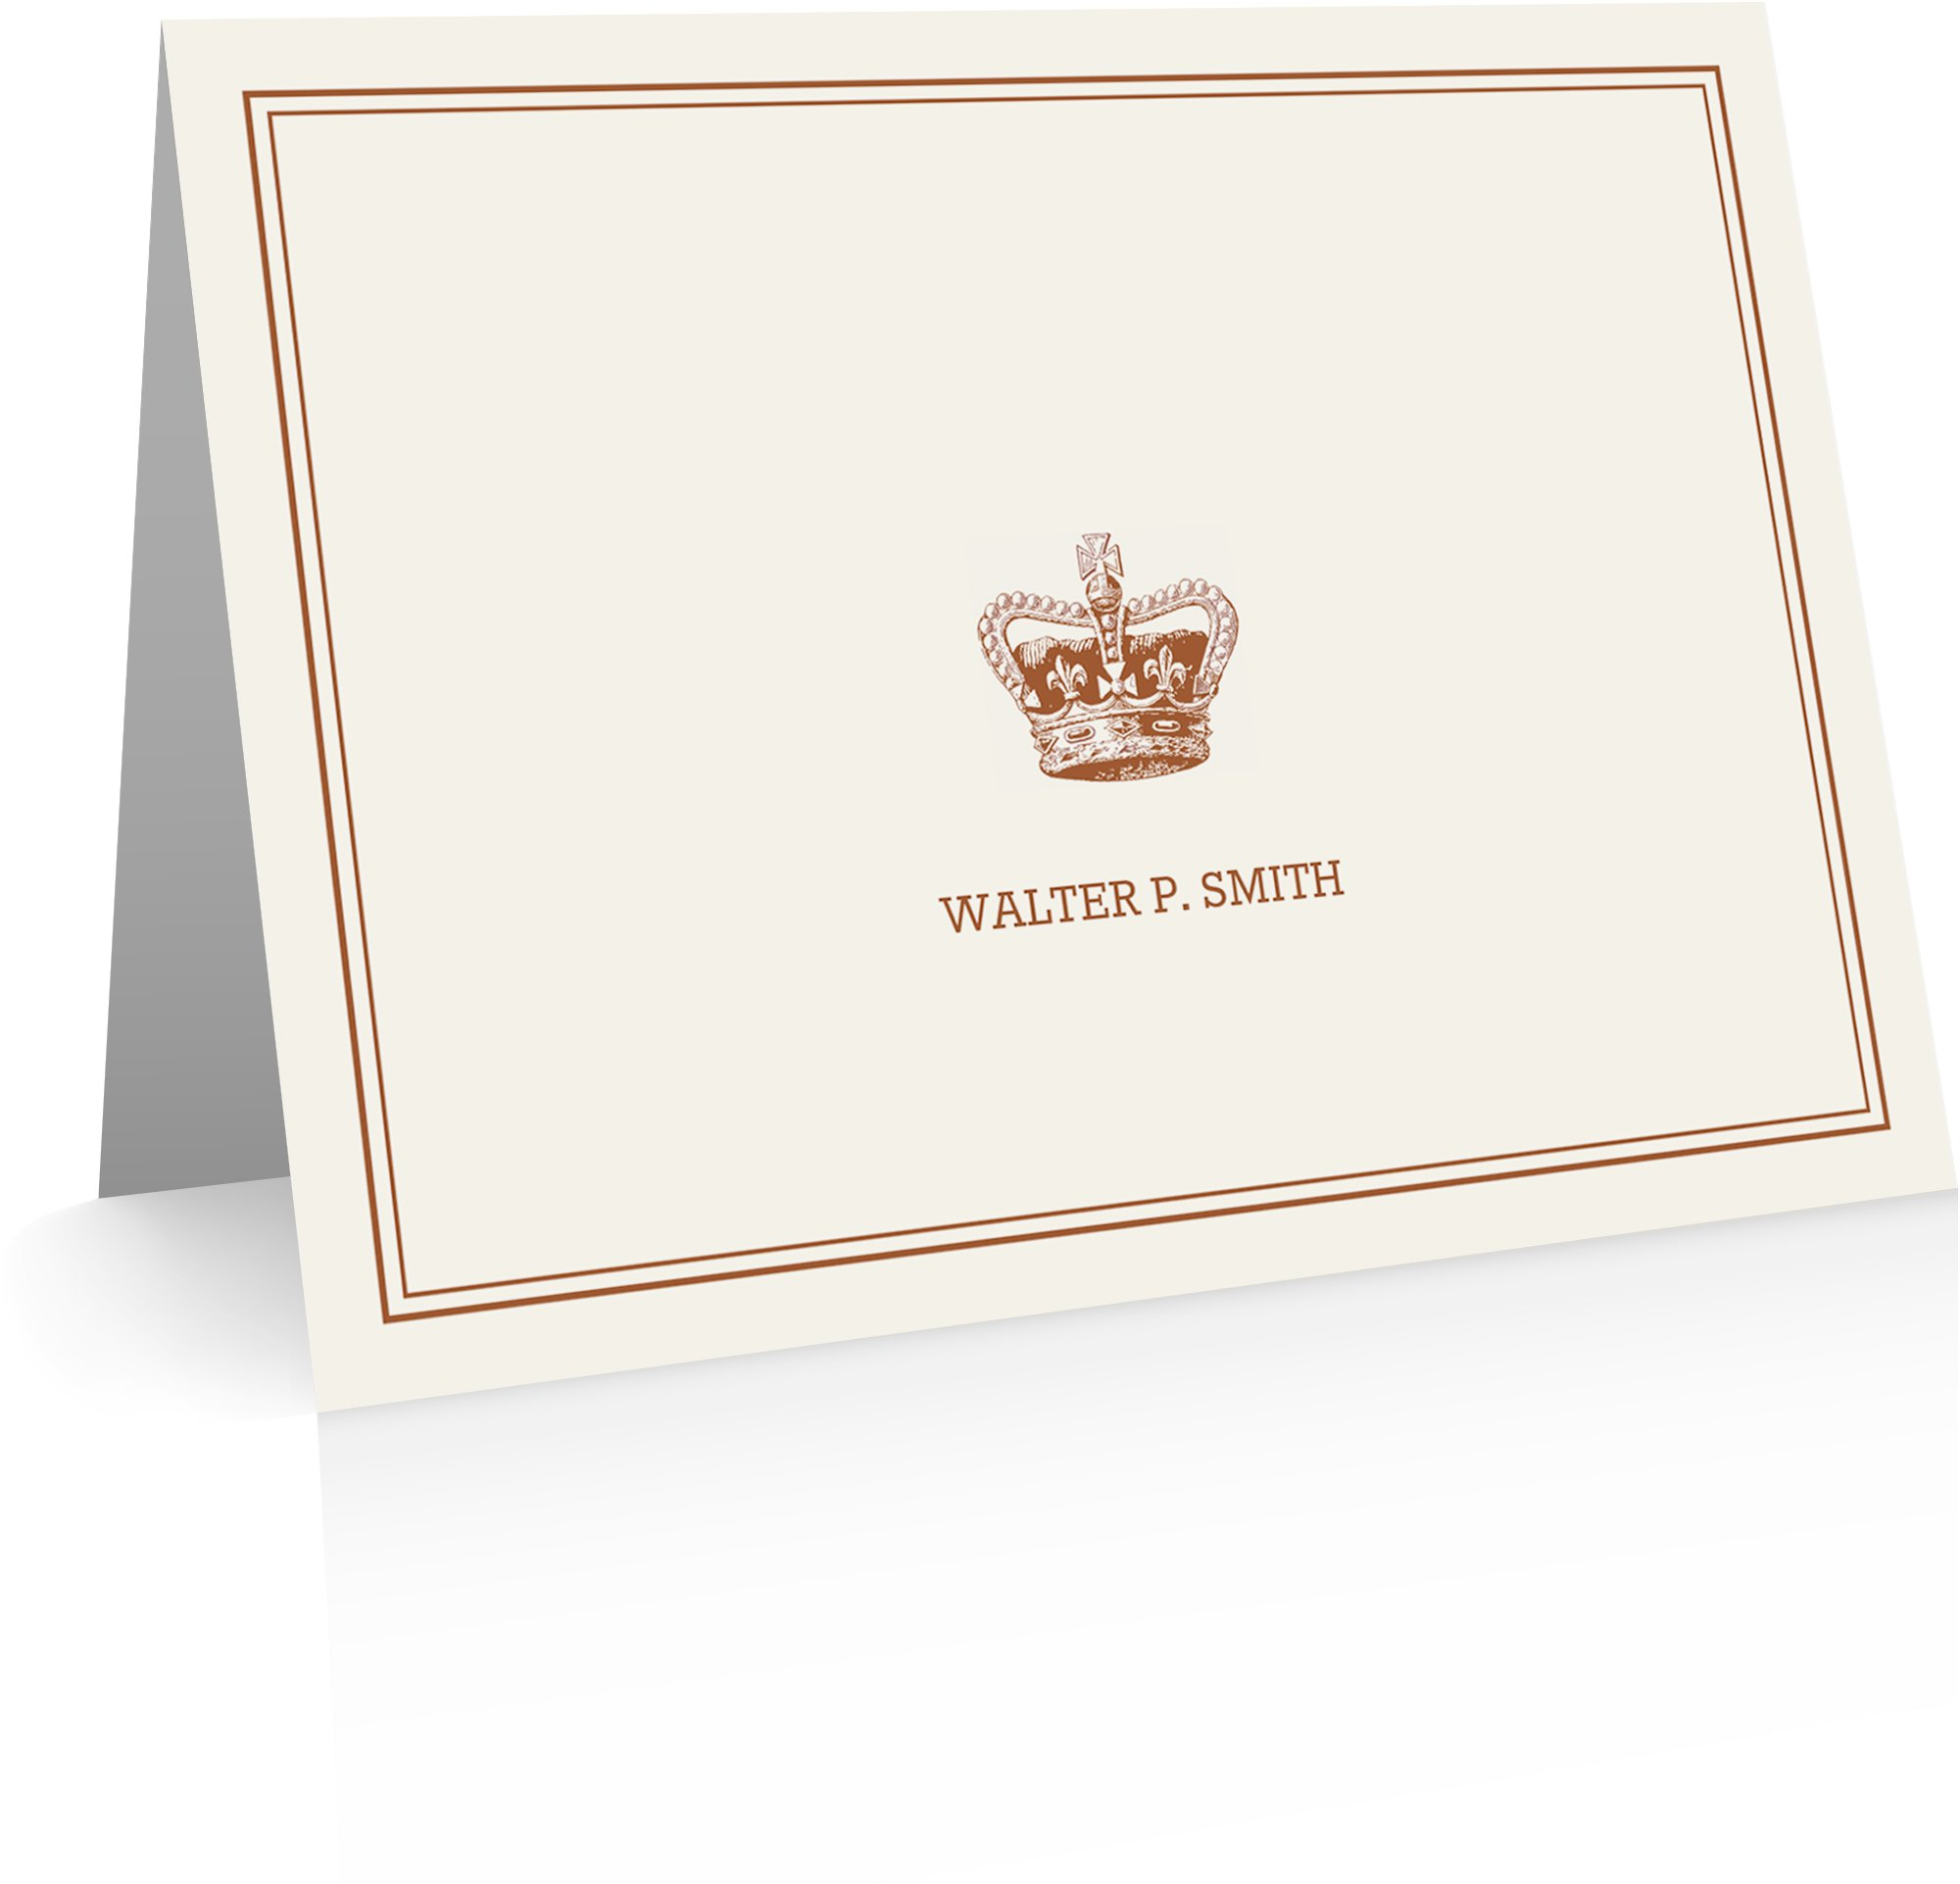 Gifts - Crown Stationery (24 Cards and Envelopes) Personalized Stationery by Little Notes by Comptime